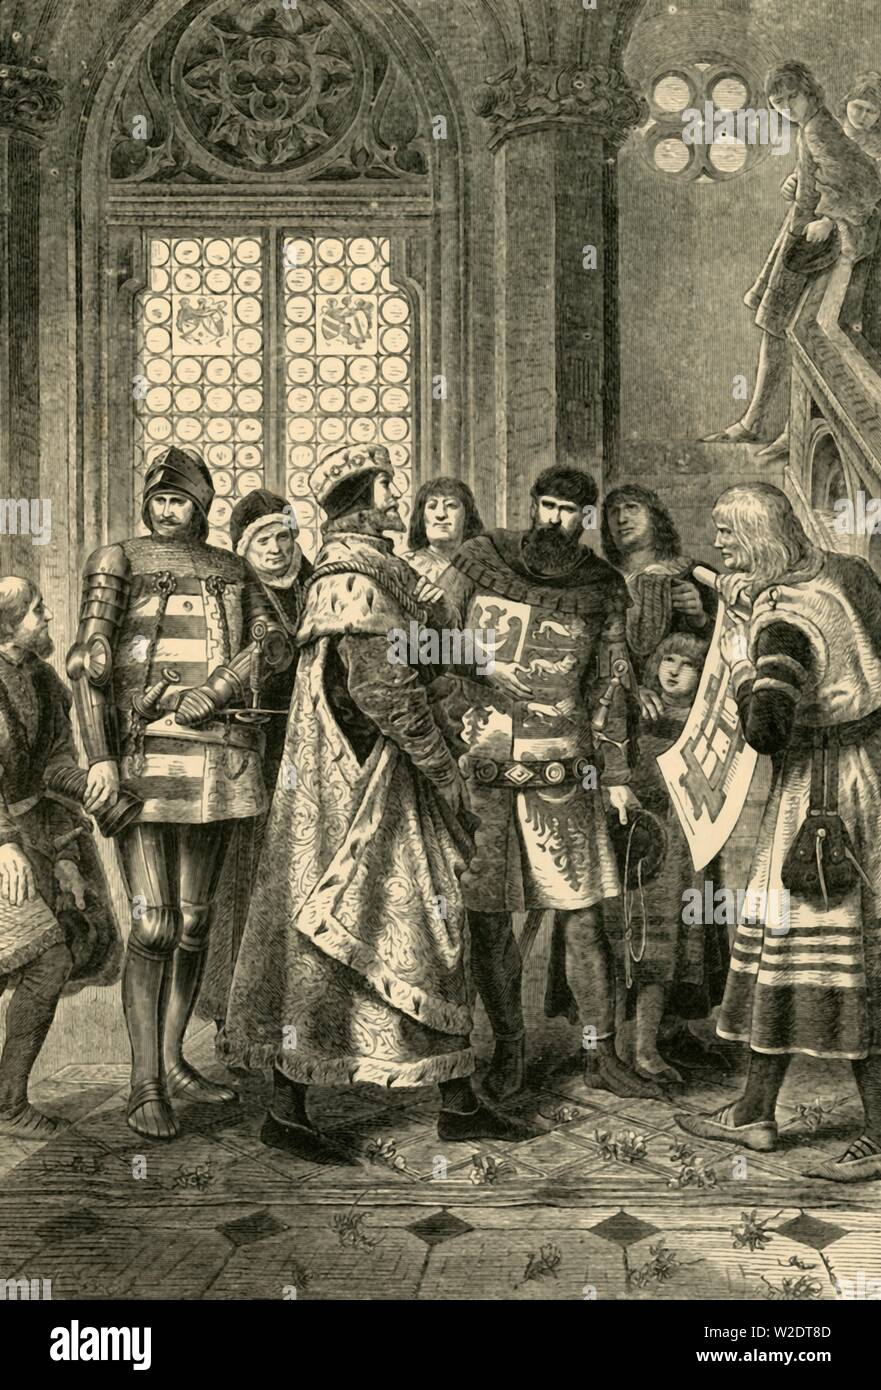 """'Duke Rudolf IV as Founder of the Stephen Cathedral', (c1360), 1890. Rudolf IV, Duke of Austria (1339-1365) House of Habsburg with plans for St. Stephen's Cathedral, Vienna. From """"Cassell's Illustrated Universal History, Vol. III - The Middle Ages"""", by Edmund Ollier. [Cassell and Company, Limited, London, Paris and Melbourne, 1890. ] - Stock Image"""